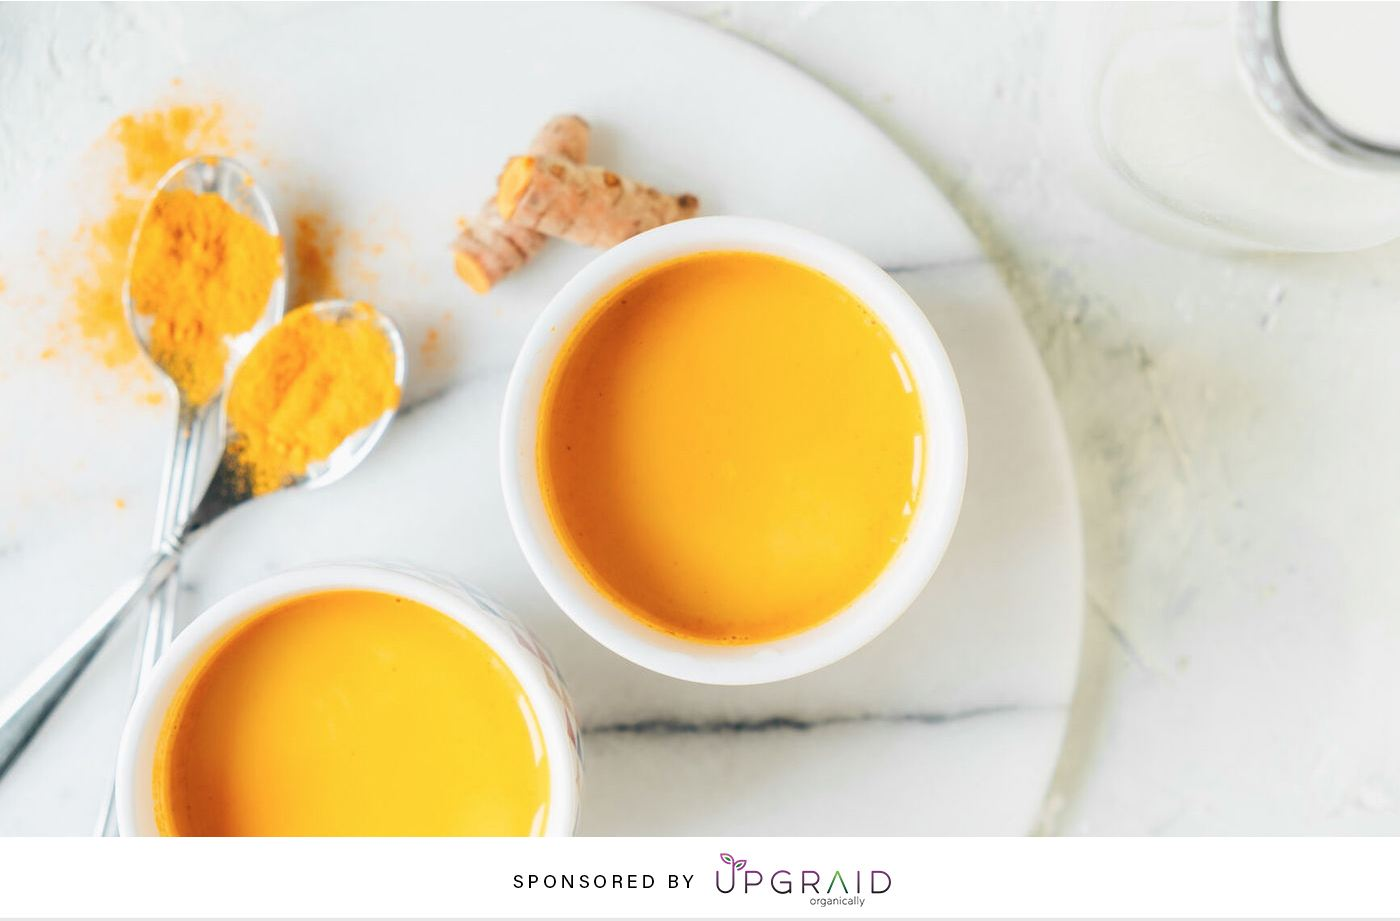 Turmeric is lauded as an anti-inflammatory hero, but is it actually as beneficial as people think?